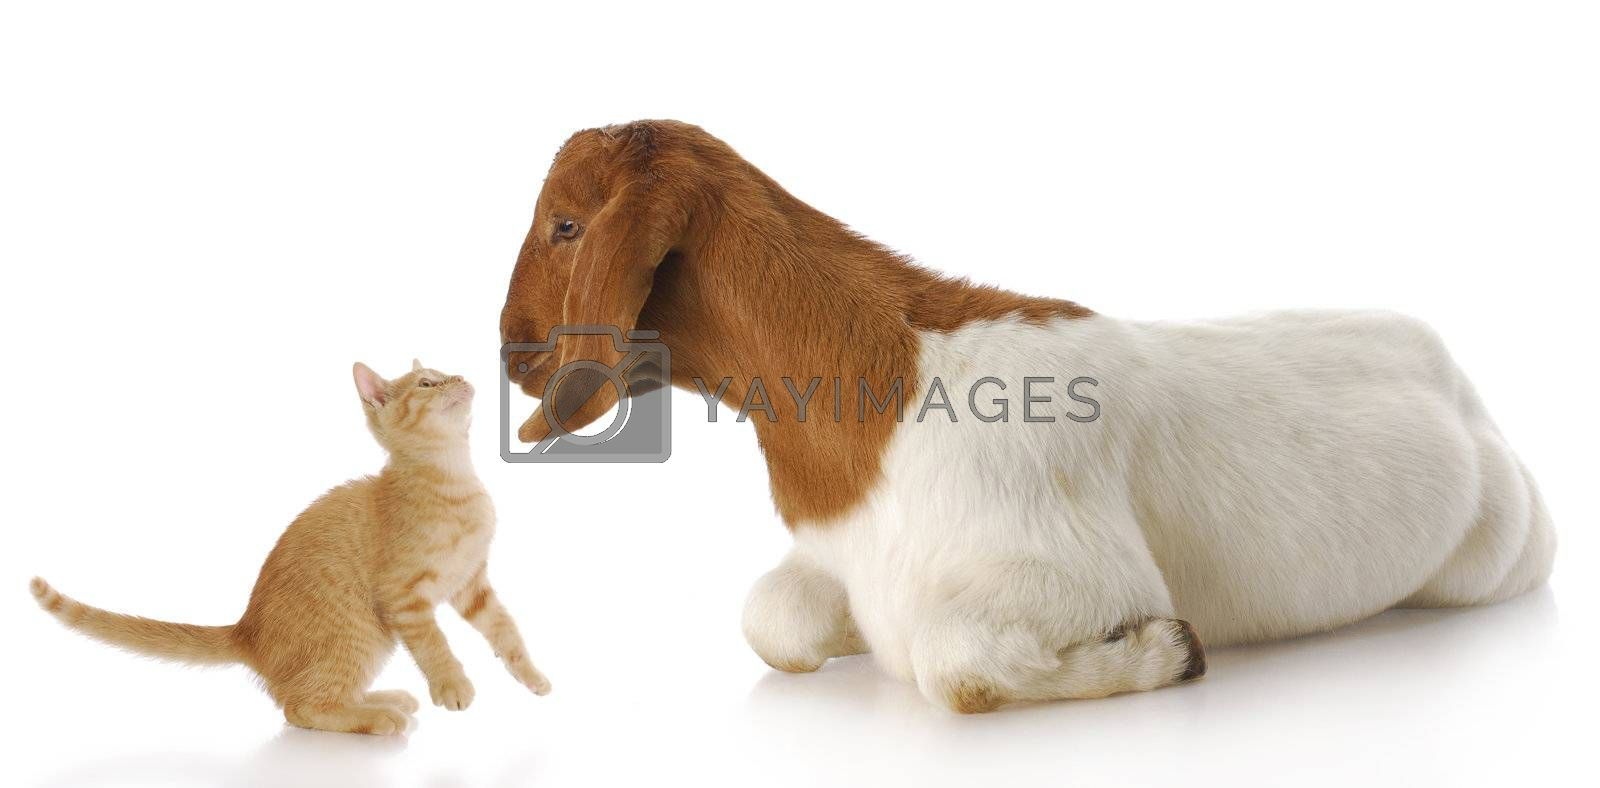 cute kitten and goat doeling interacting with each other with reflection on white background